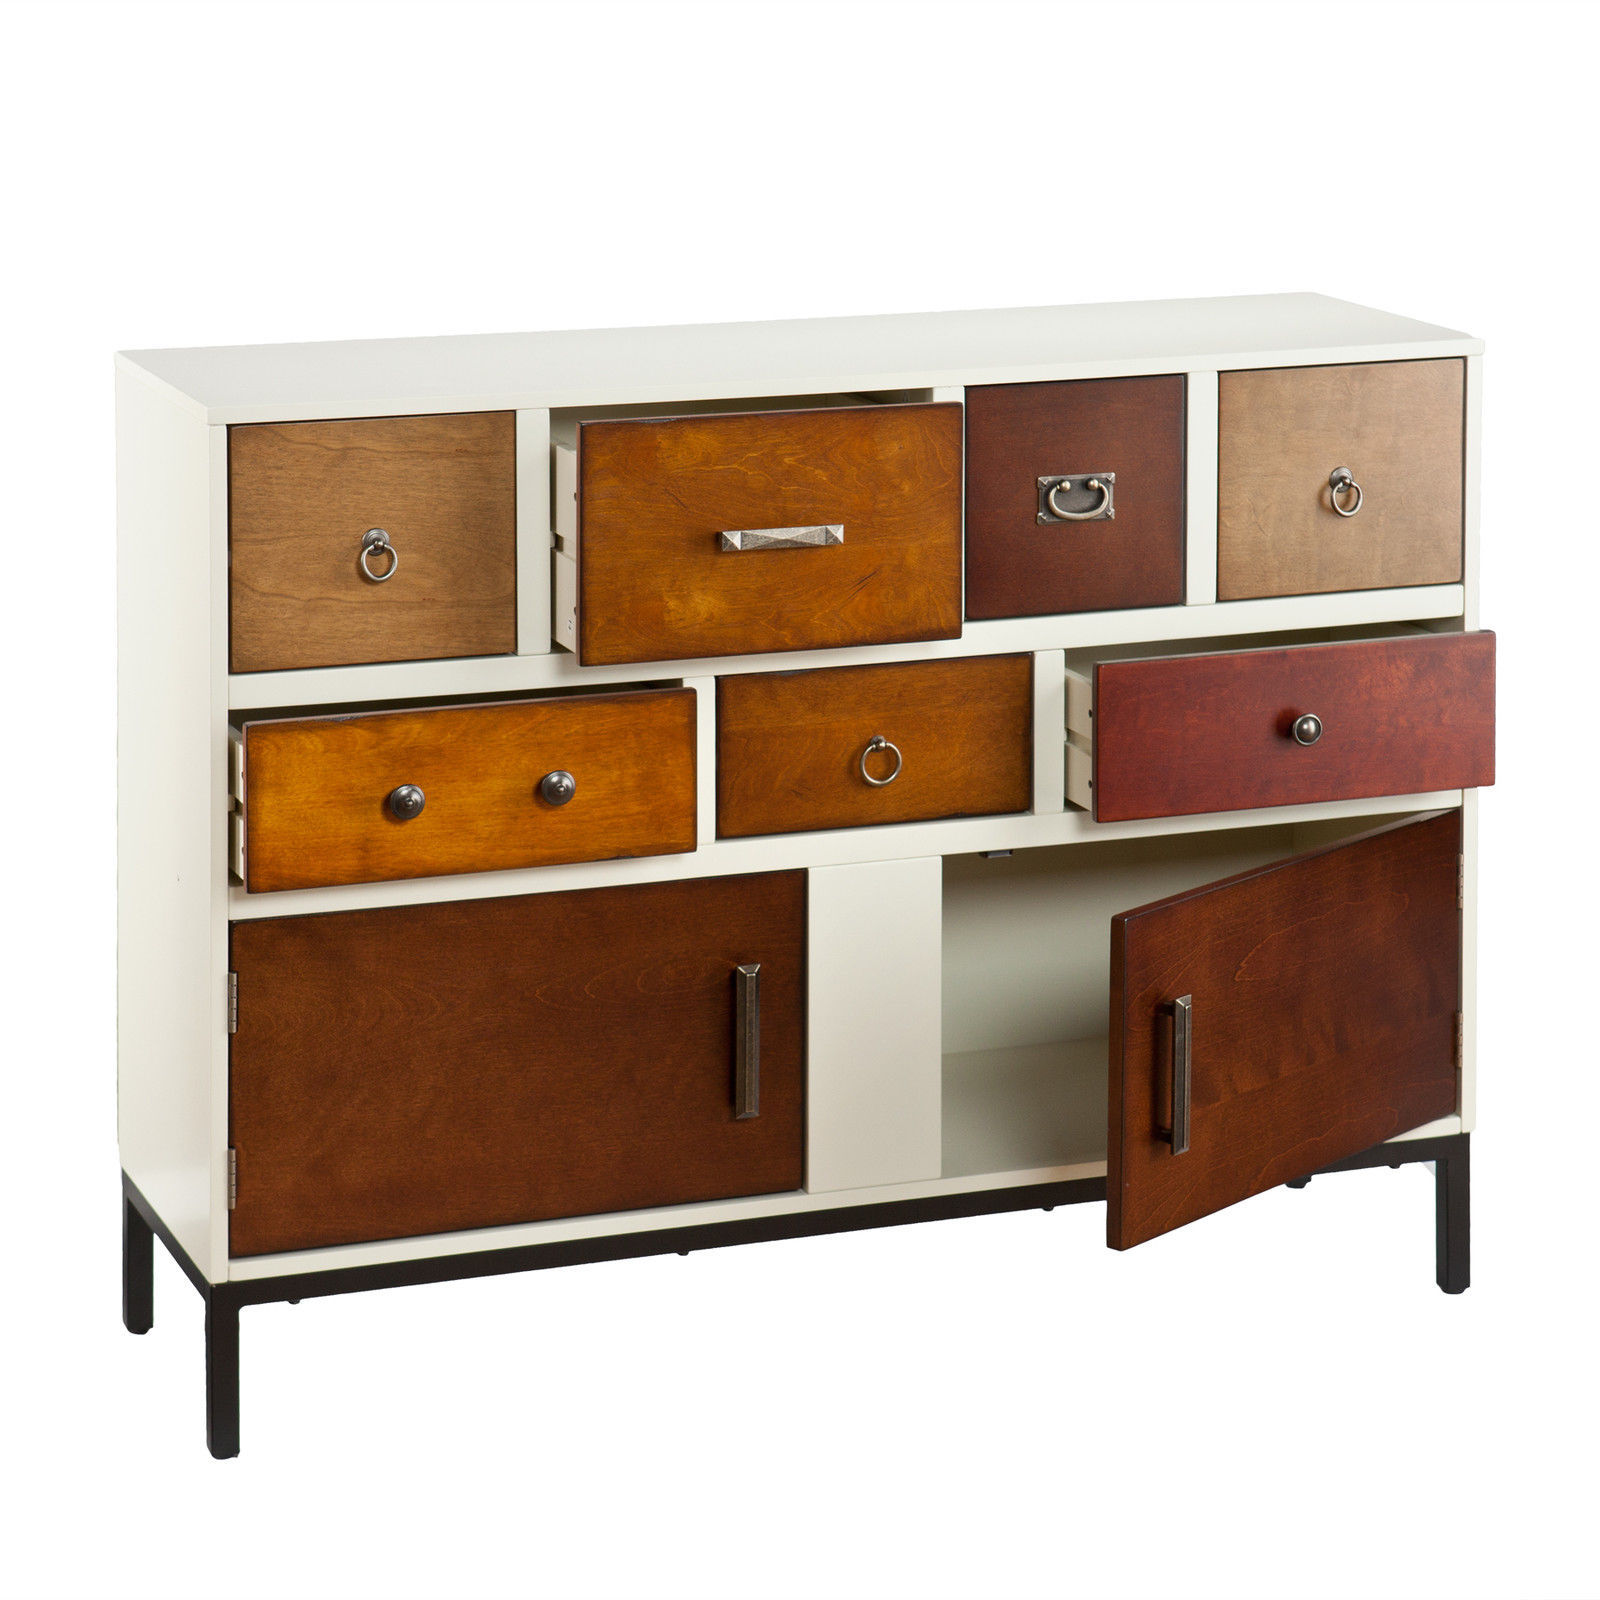 Very Impressive portraiture of Wooden Multi Drawer Style Living Room Side Accent Sofa Console Table  with #AD5301 color and 1600x1600 pixels